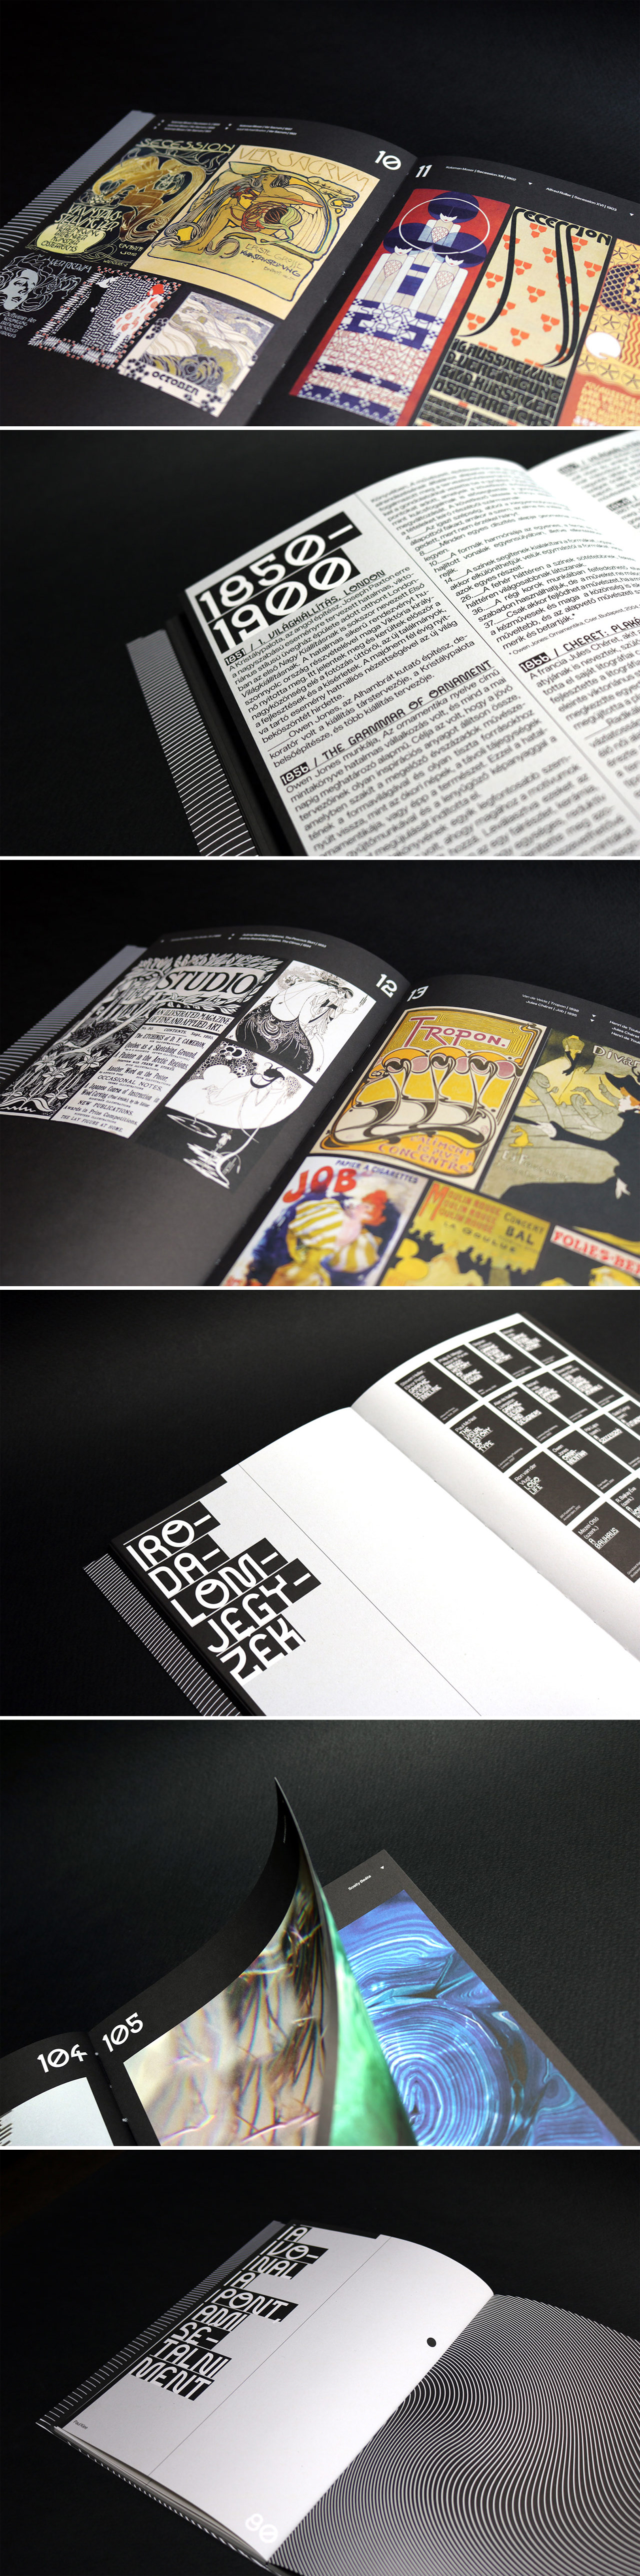 Graphic Design Timeline with design and text by Dora Balla.